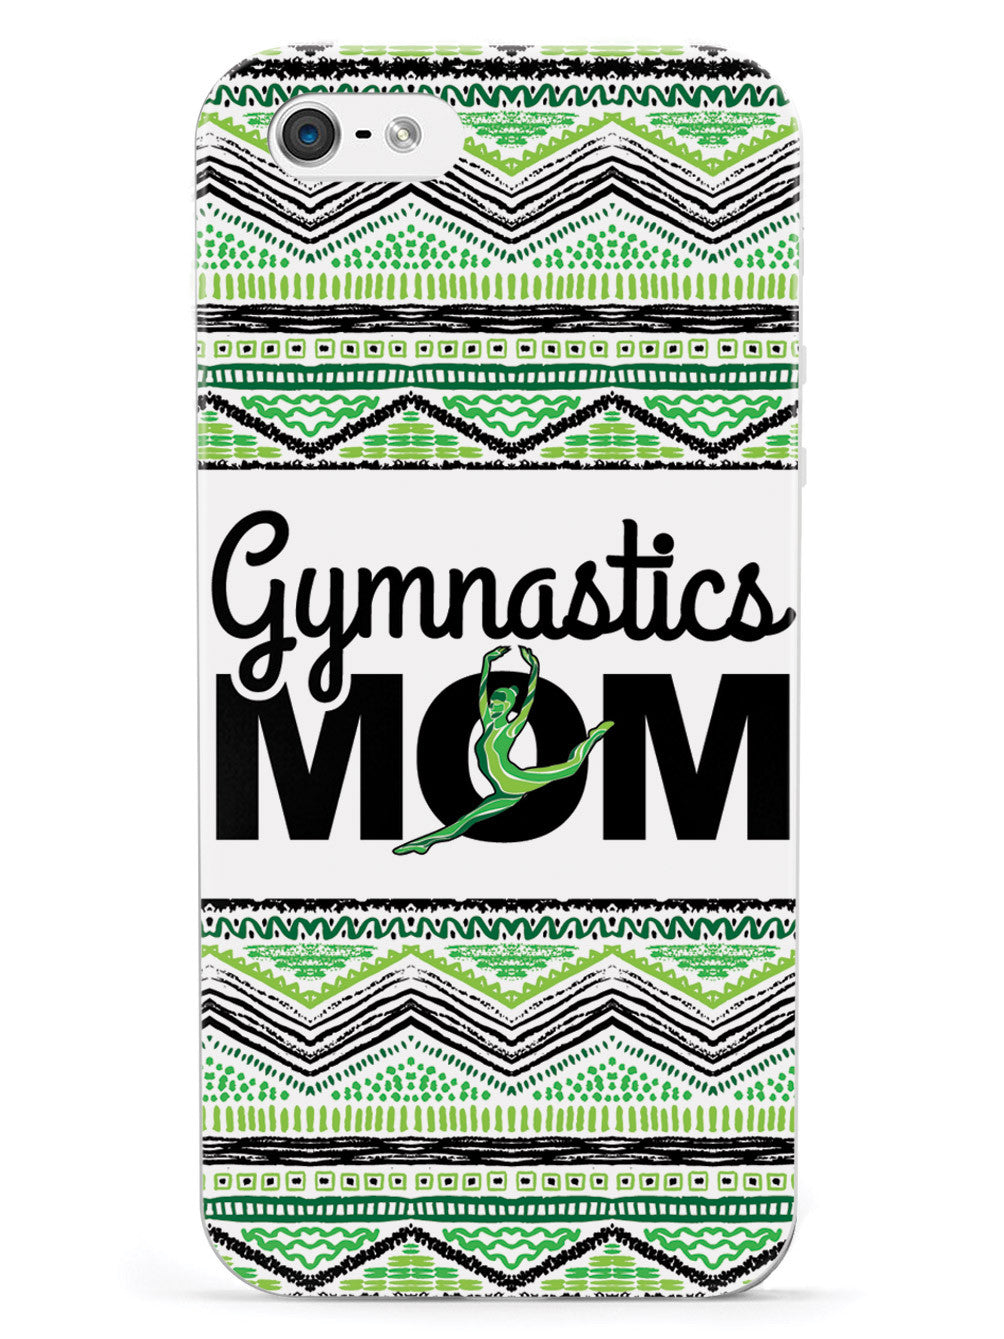 Green Gymnastics Mom - White Case